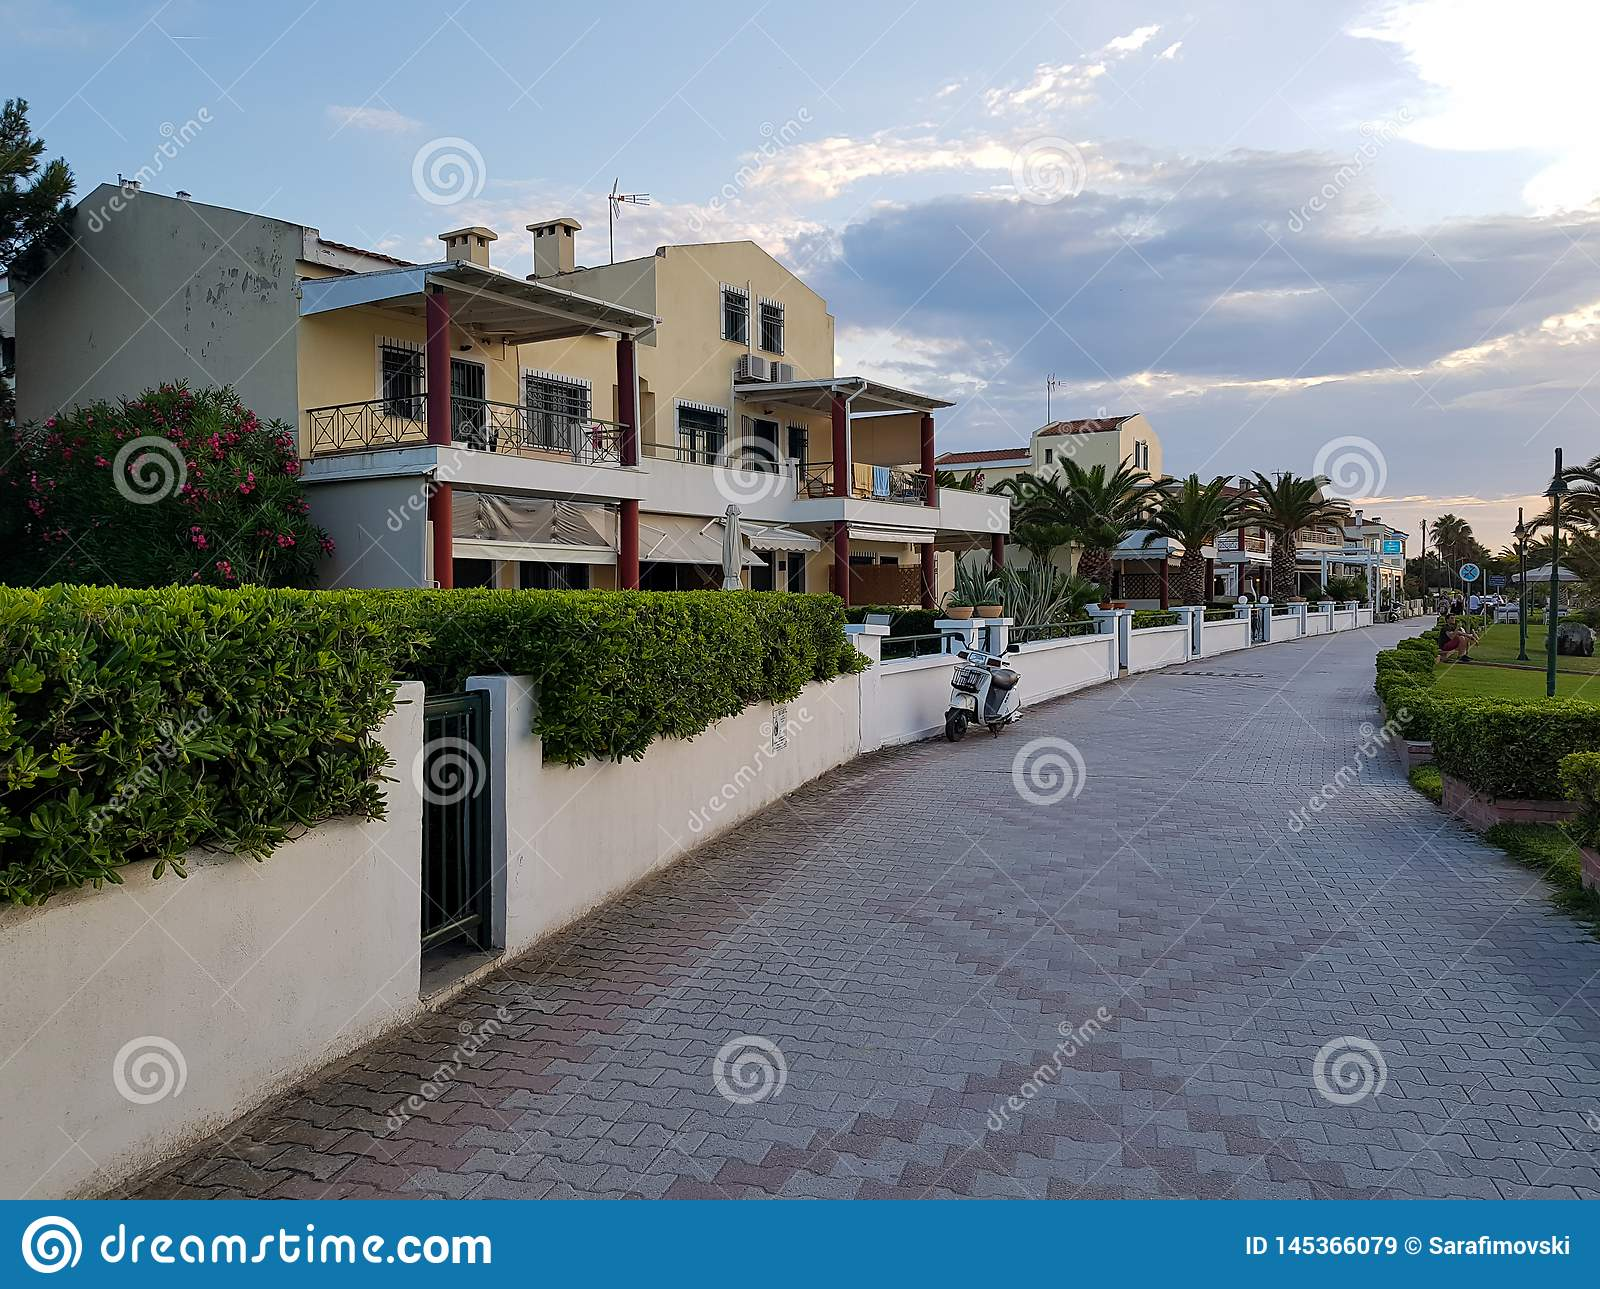 Row of modern houses with hedge fence and beautiful stone road.